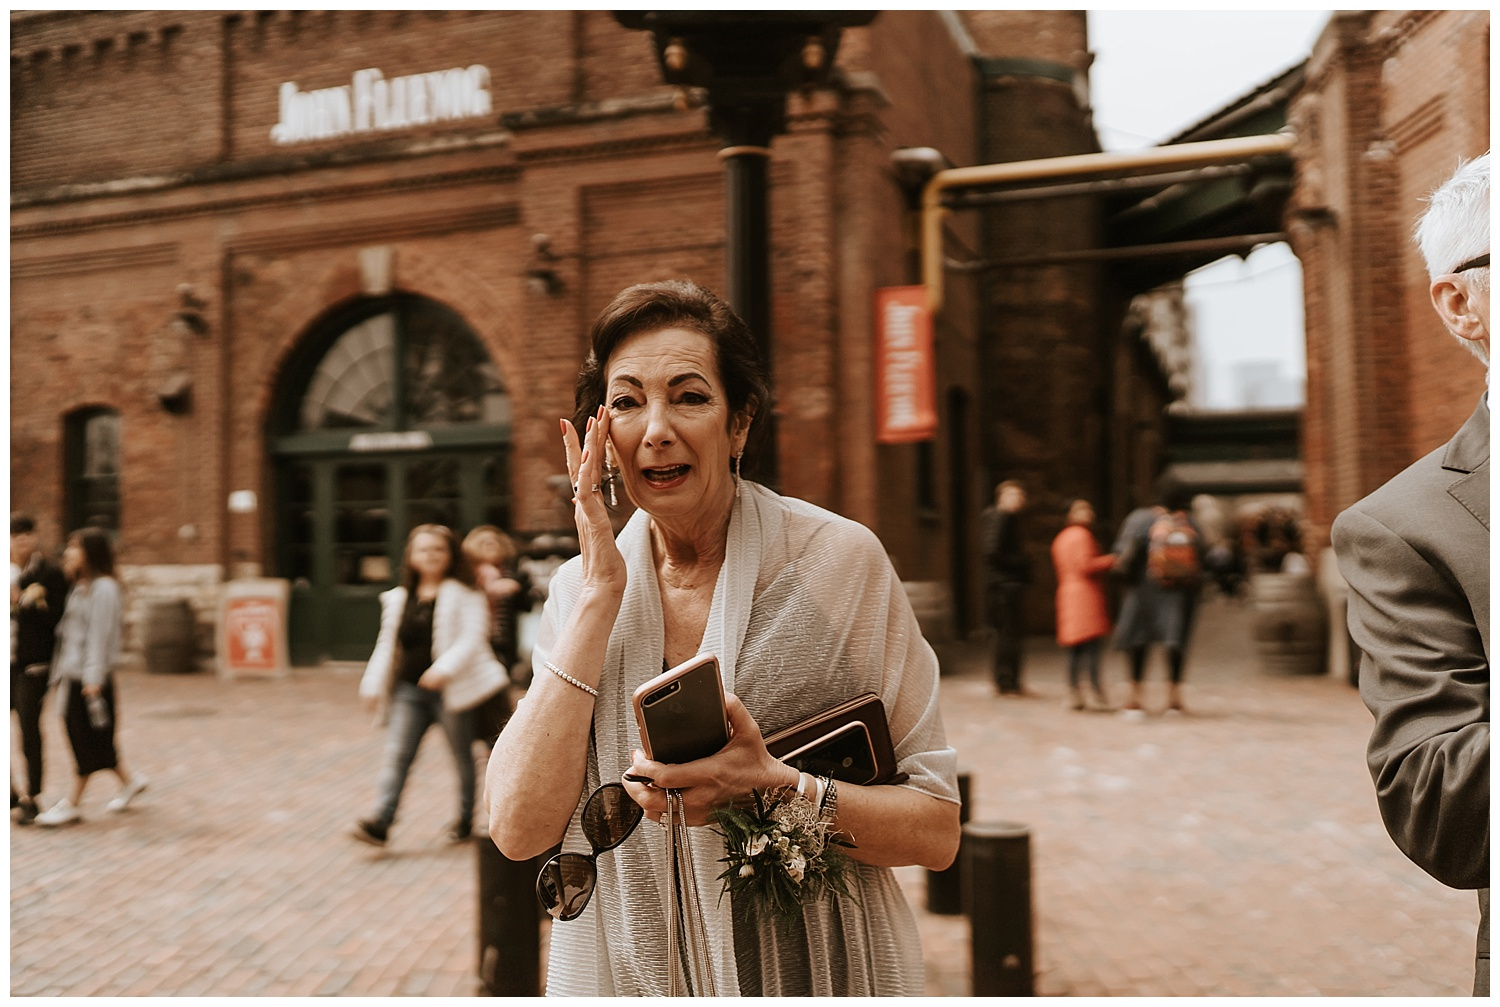 Katie Marie Photography | Archeo Wedding Arta Gallery Wedding | Distillery District Wedding | Toronto Wedding Photographer | Hamilton Toronto Ontario Wedding Photographer |_0014.jpg